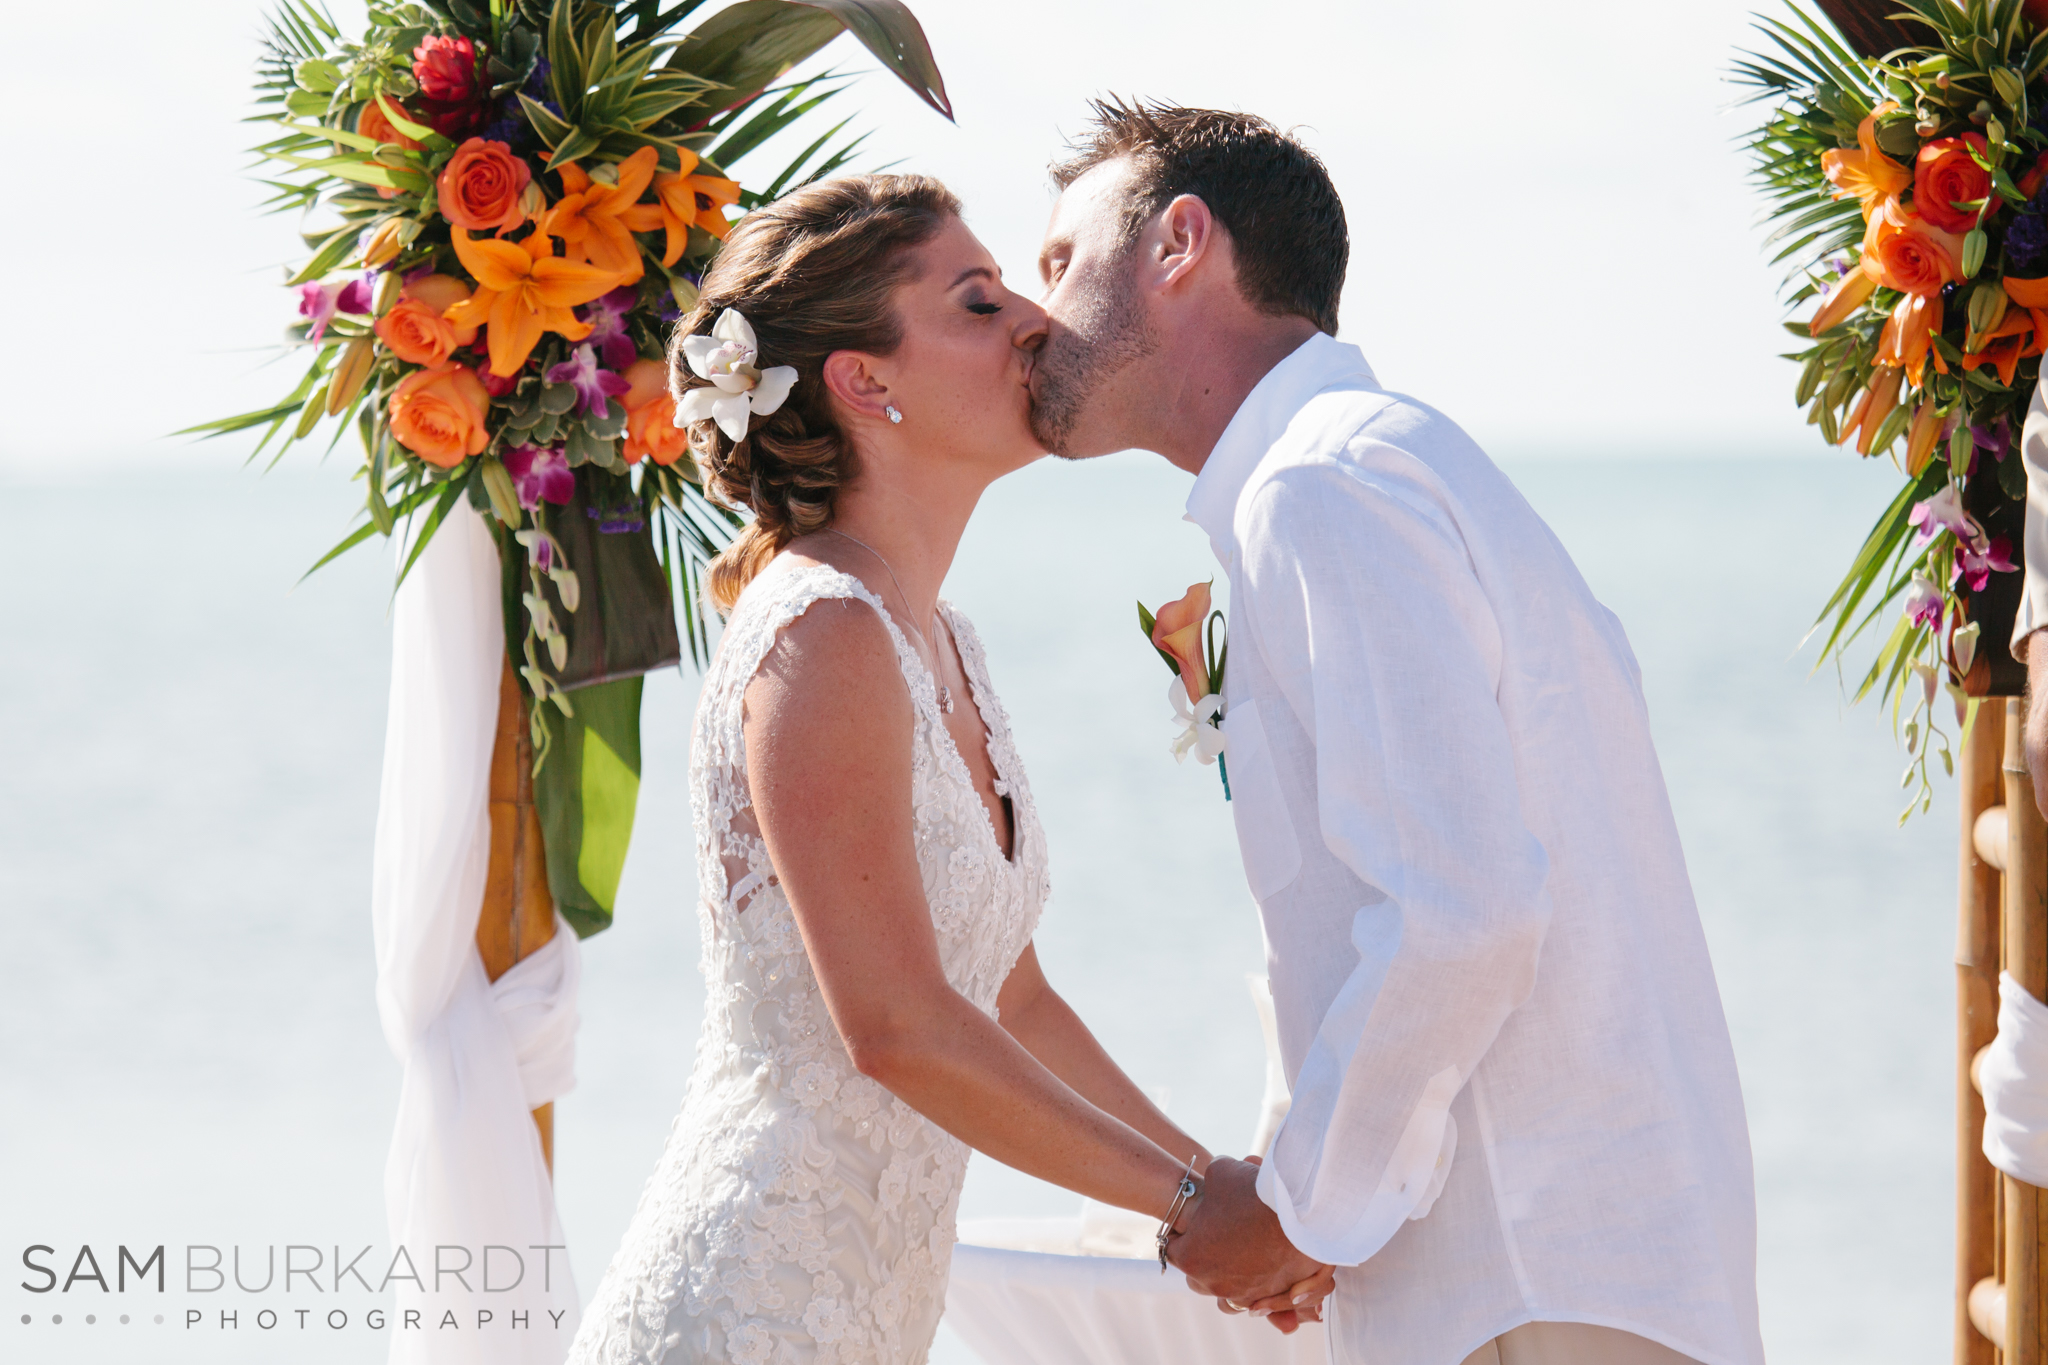 samburkardt_key_west_wedding_marathon_florida_summer_beach_ocean_front_0033.jpg